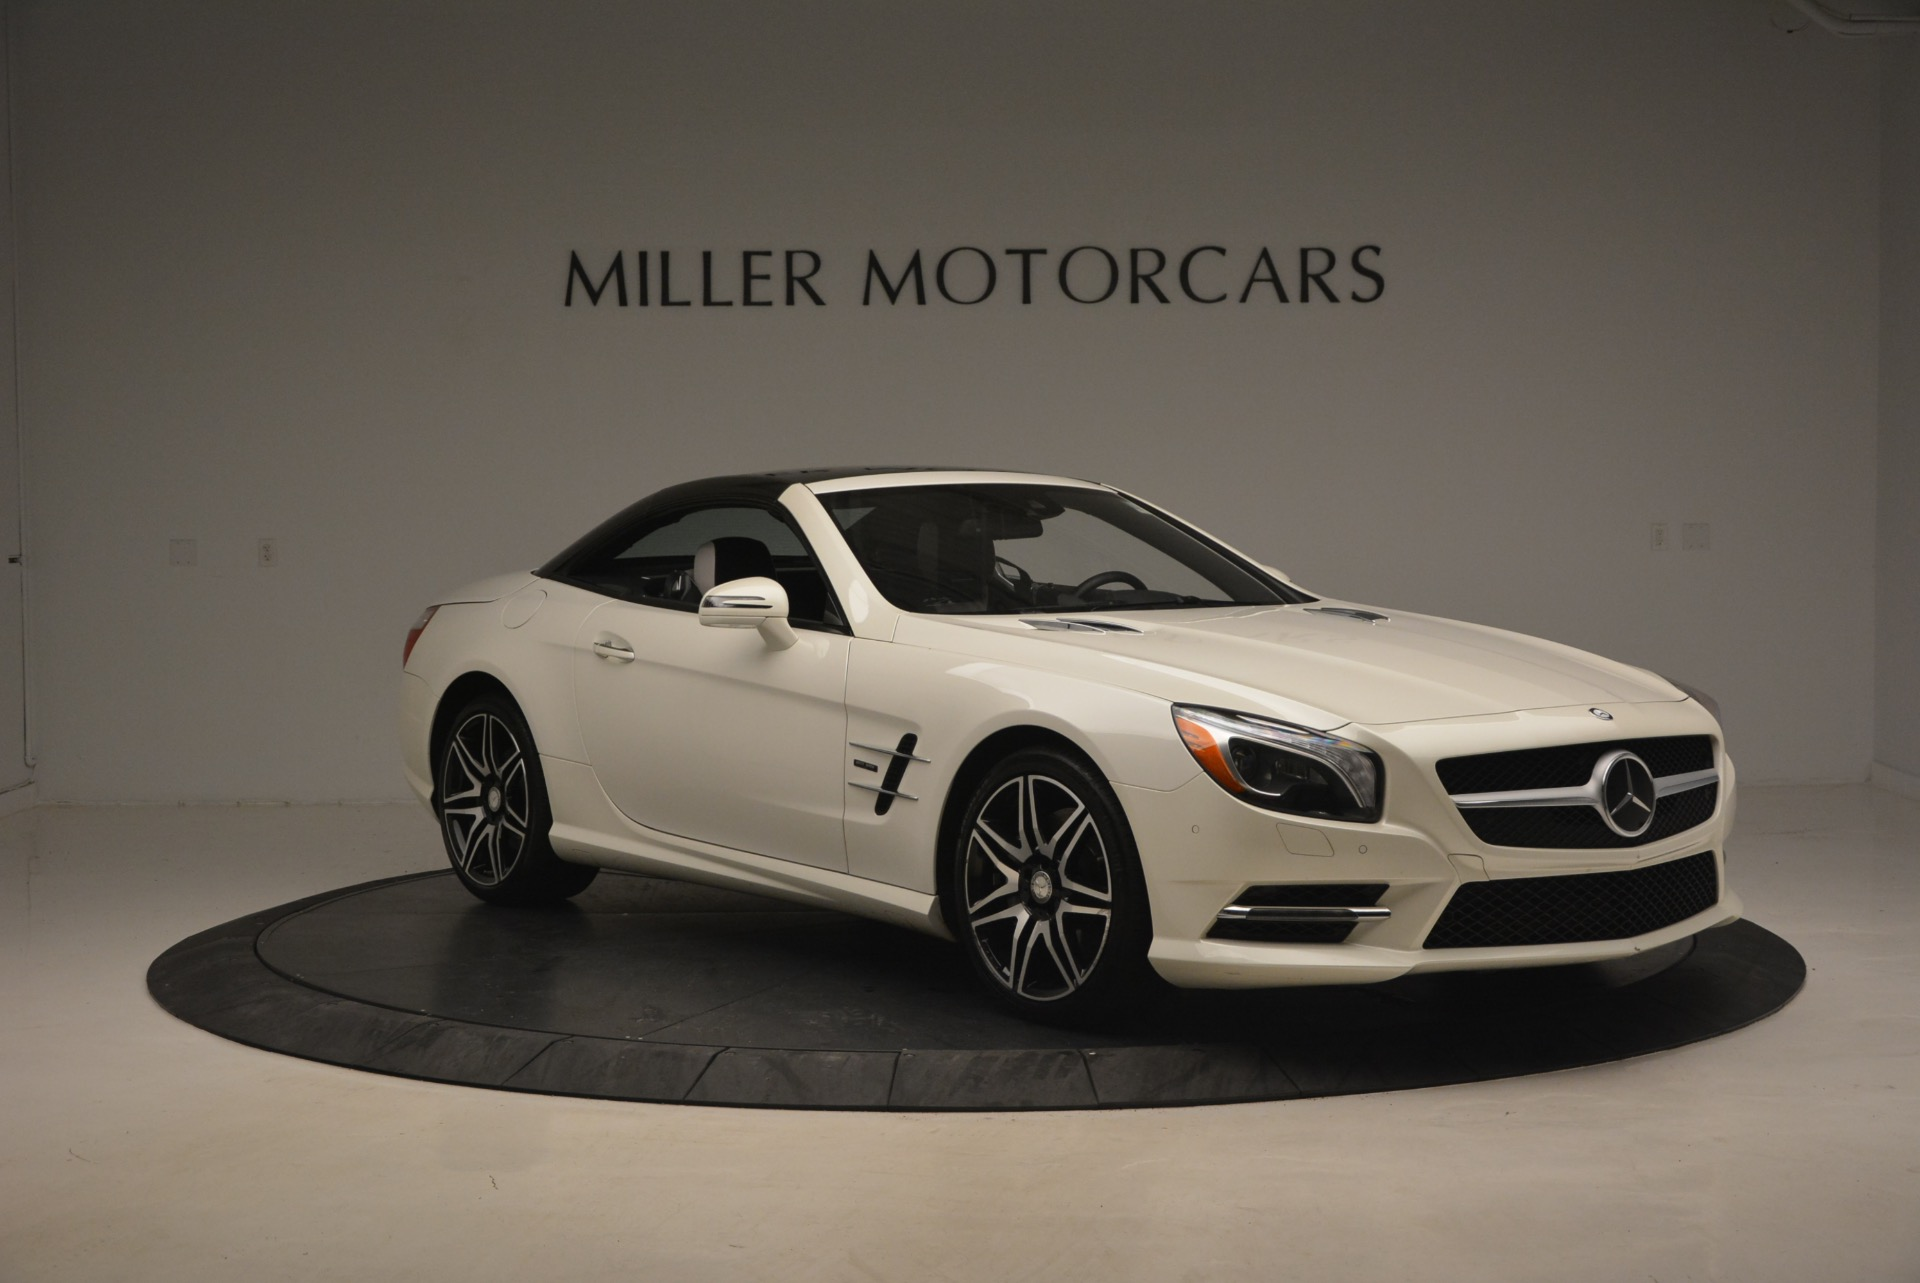 Used 2015 Mercedes Benz SL-Class SL 550 For Sale In Greenwich, CT 1261_p25